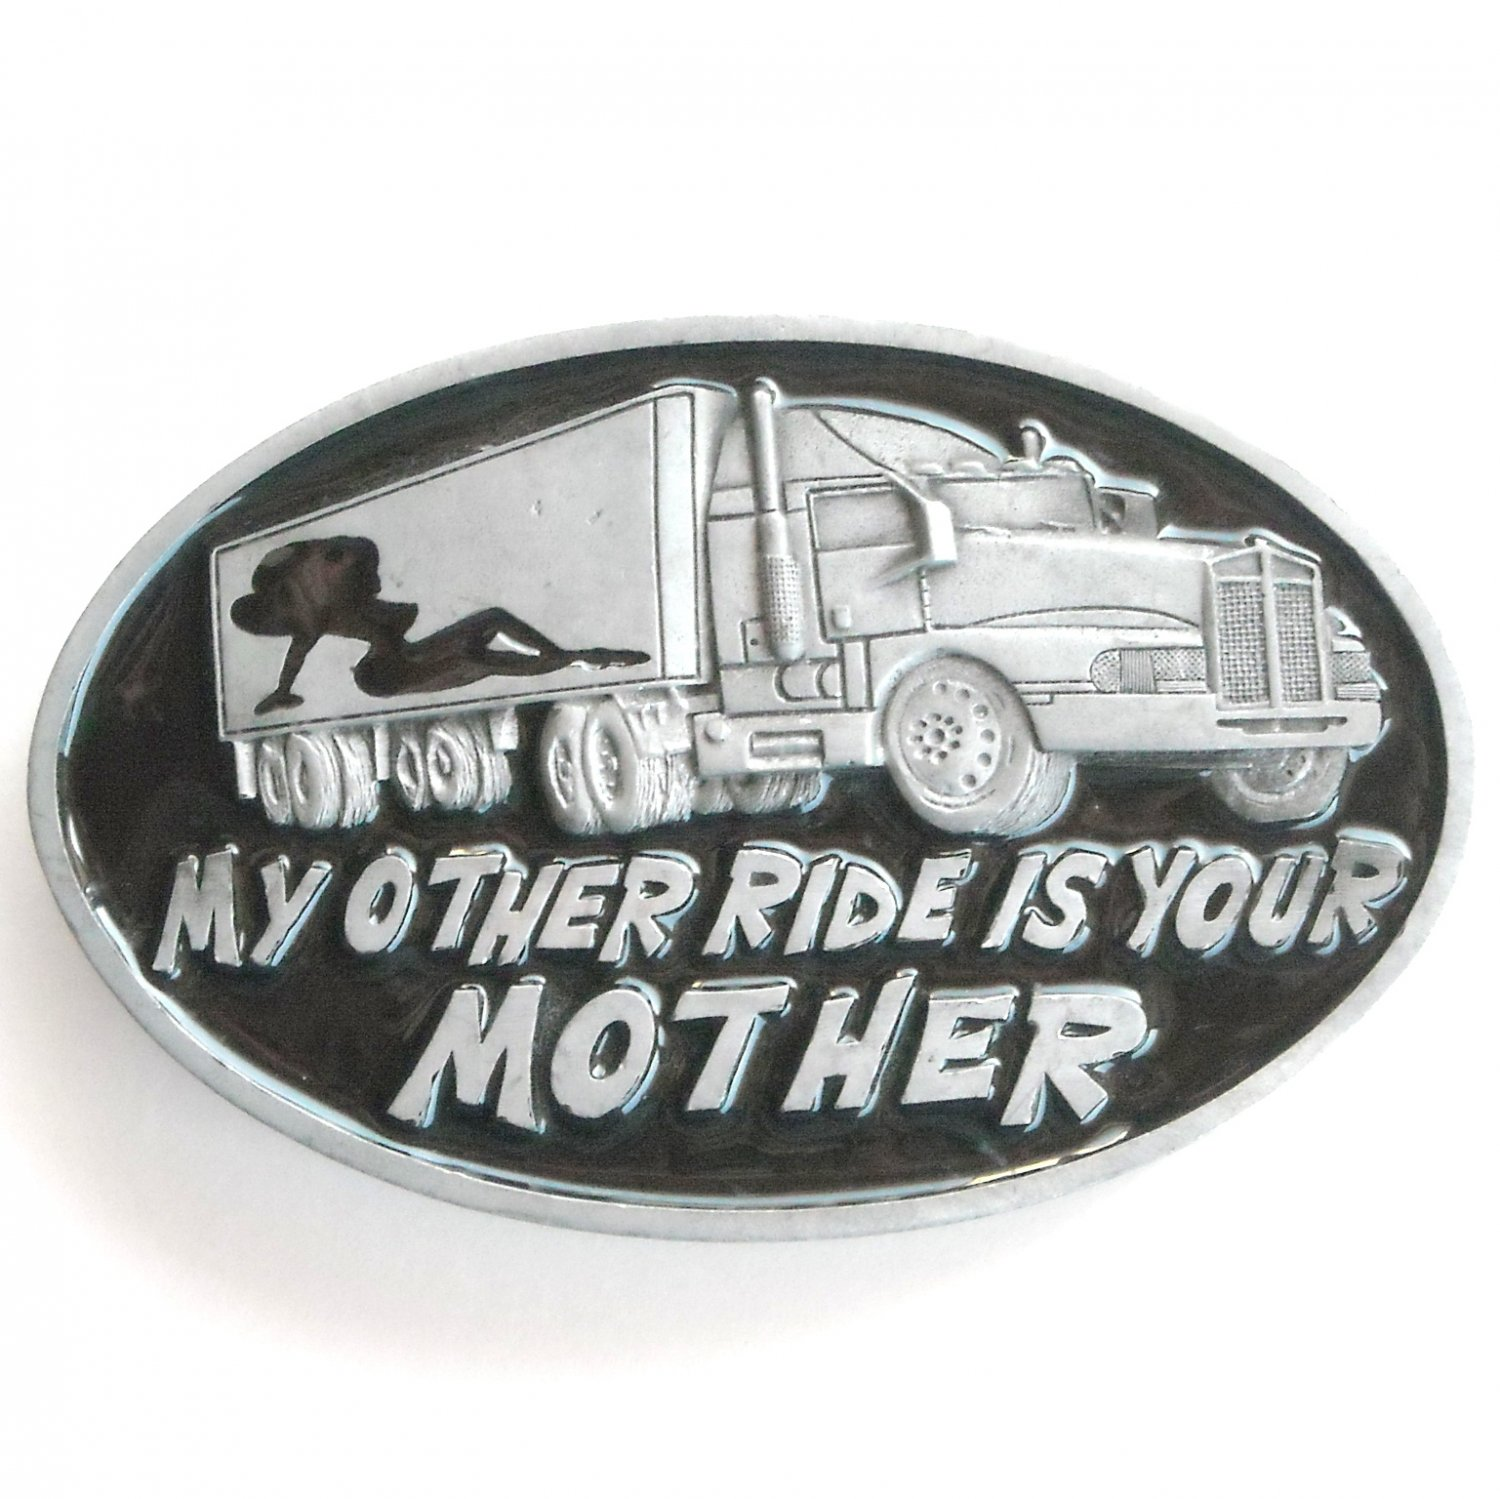 My Other Ride Is Your Mother Heavy Metal Black Enamel oval alloy belt buckle